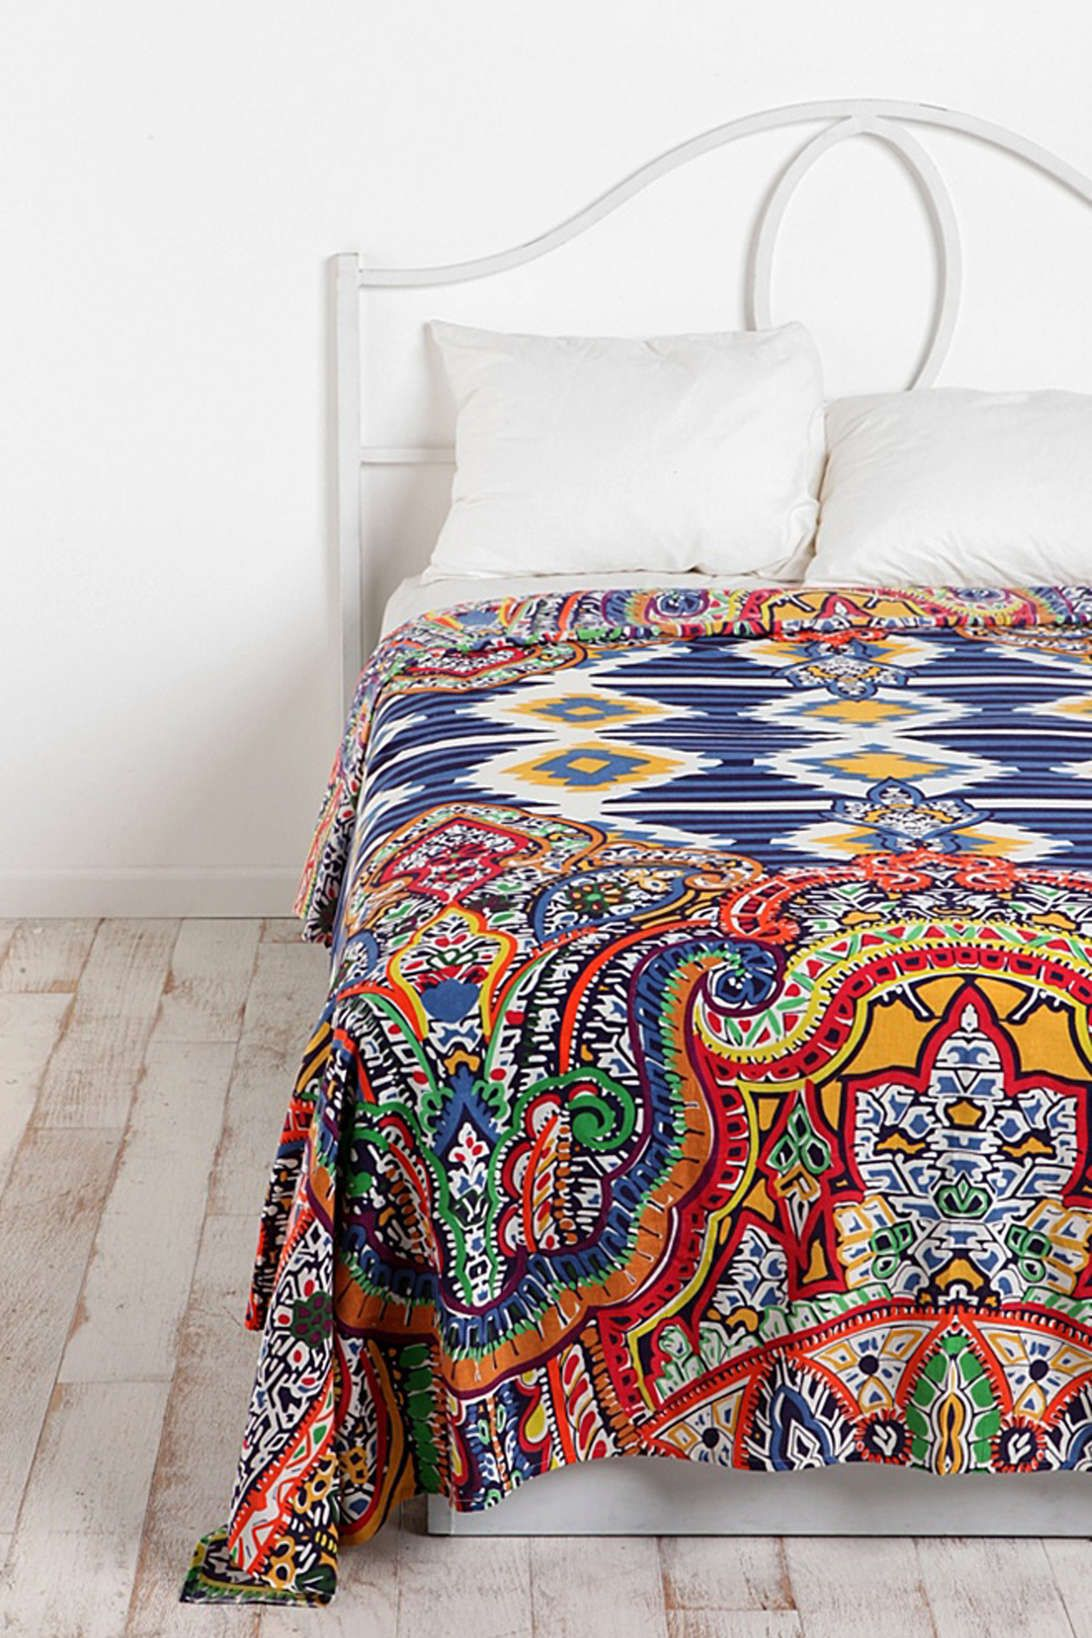 Etro Tagesdecke Tagesdecke Mit Geometrischem Gobelin Muster Bei Urban Outfitters